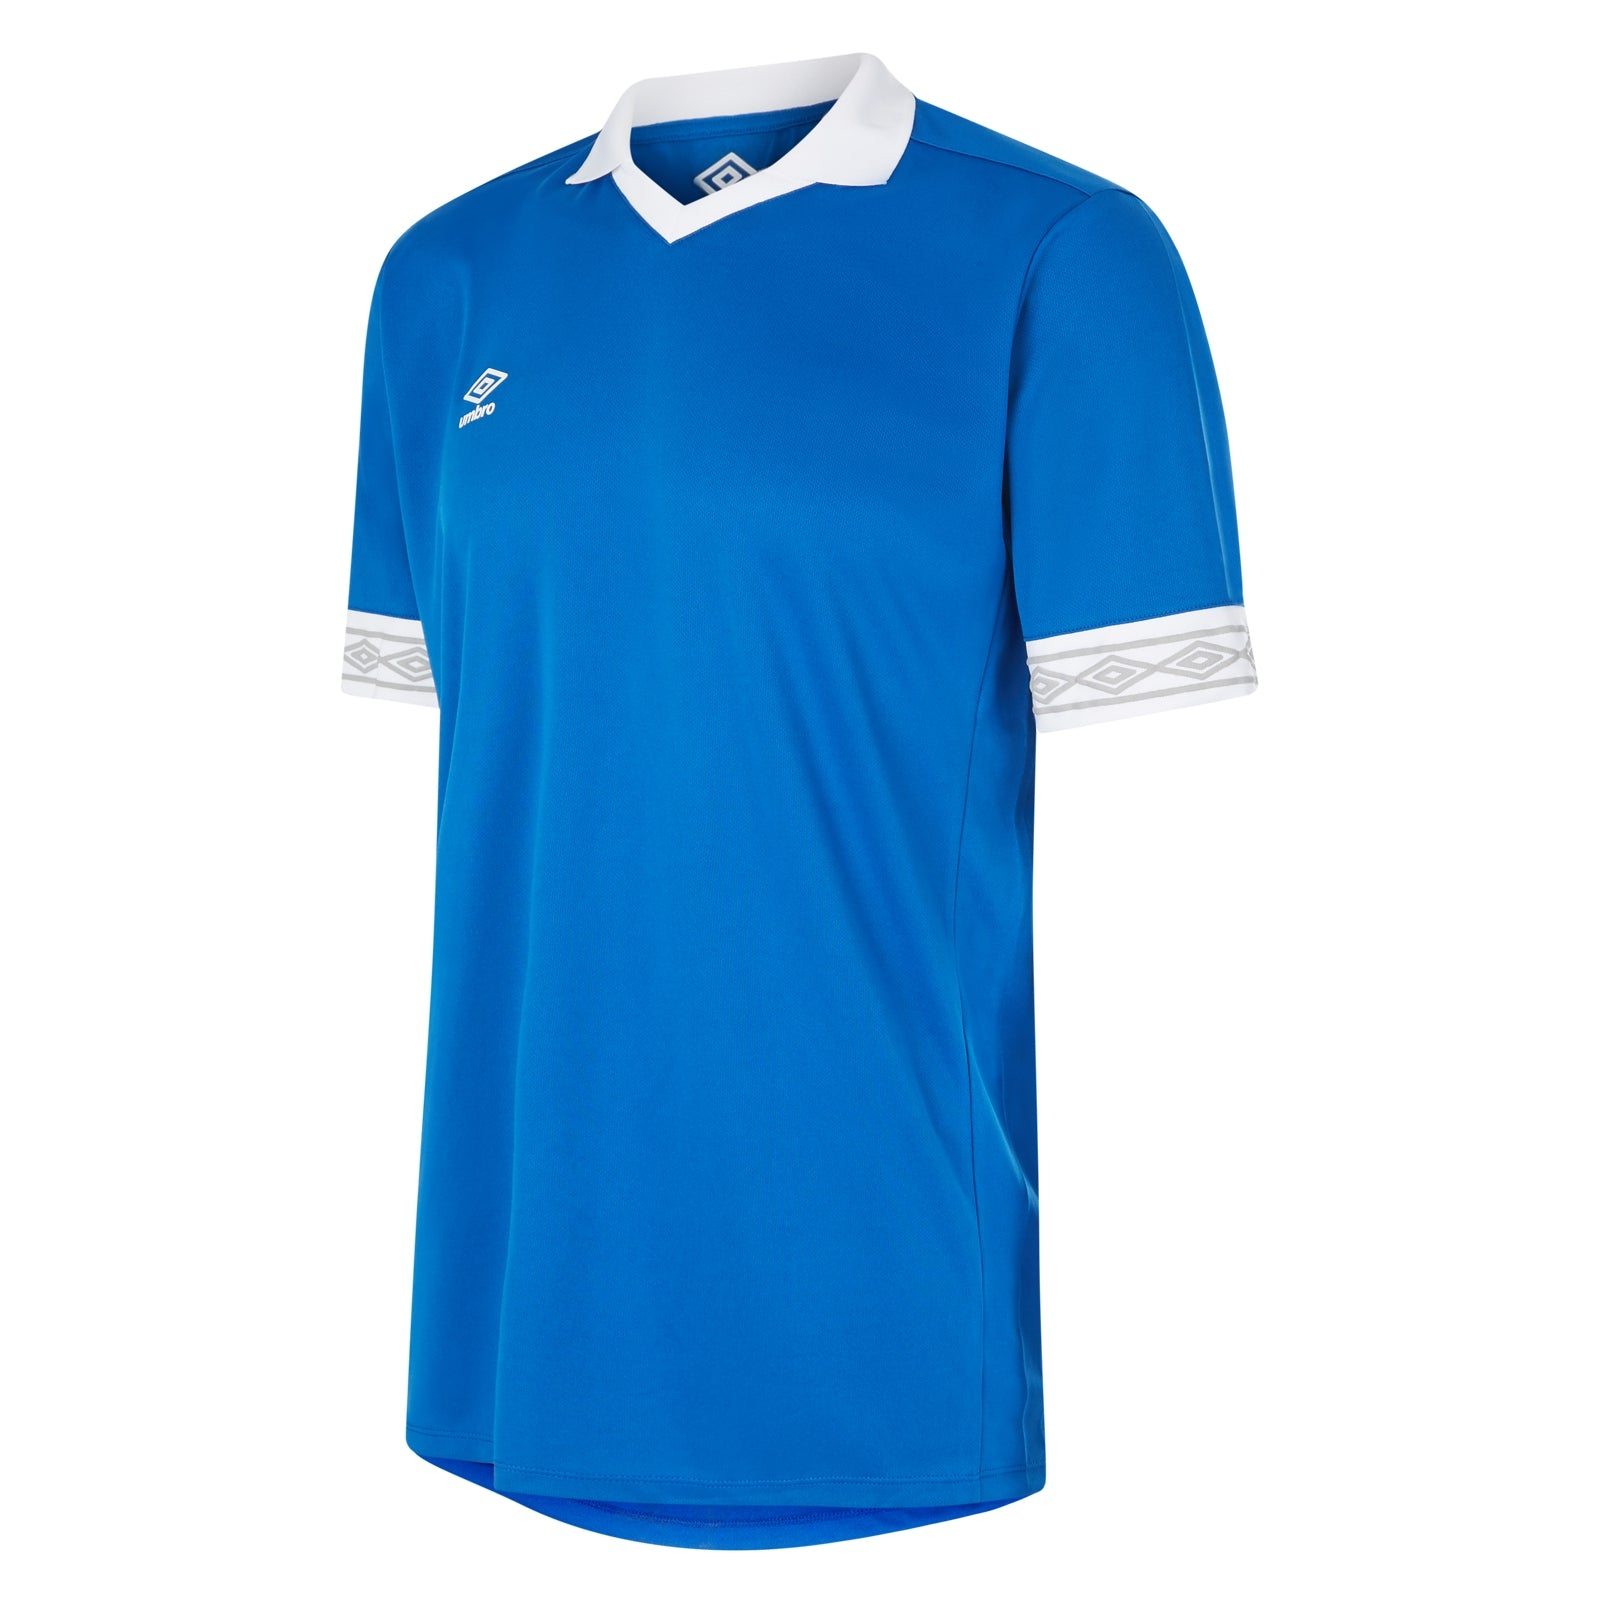 Umbro Tempest jersey short sleeve in royal blue with contrast white collar and cuff